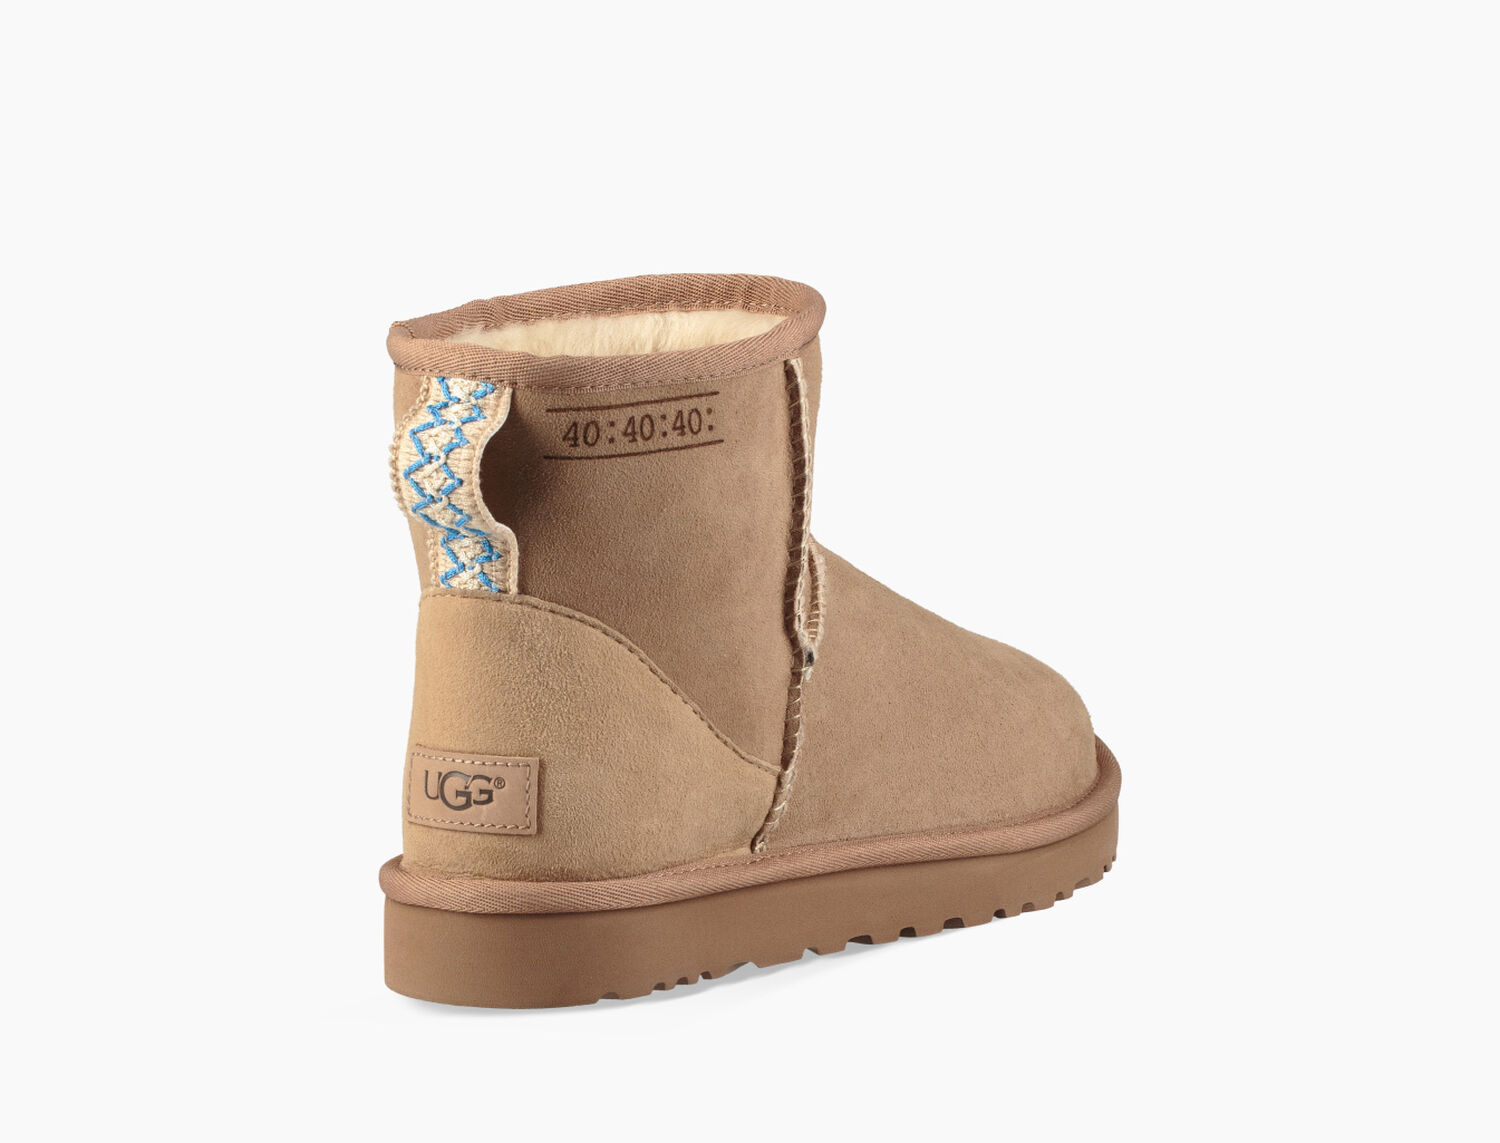 39f18d54844 Men's Share this product Classic Mini 40:40:40 Boot